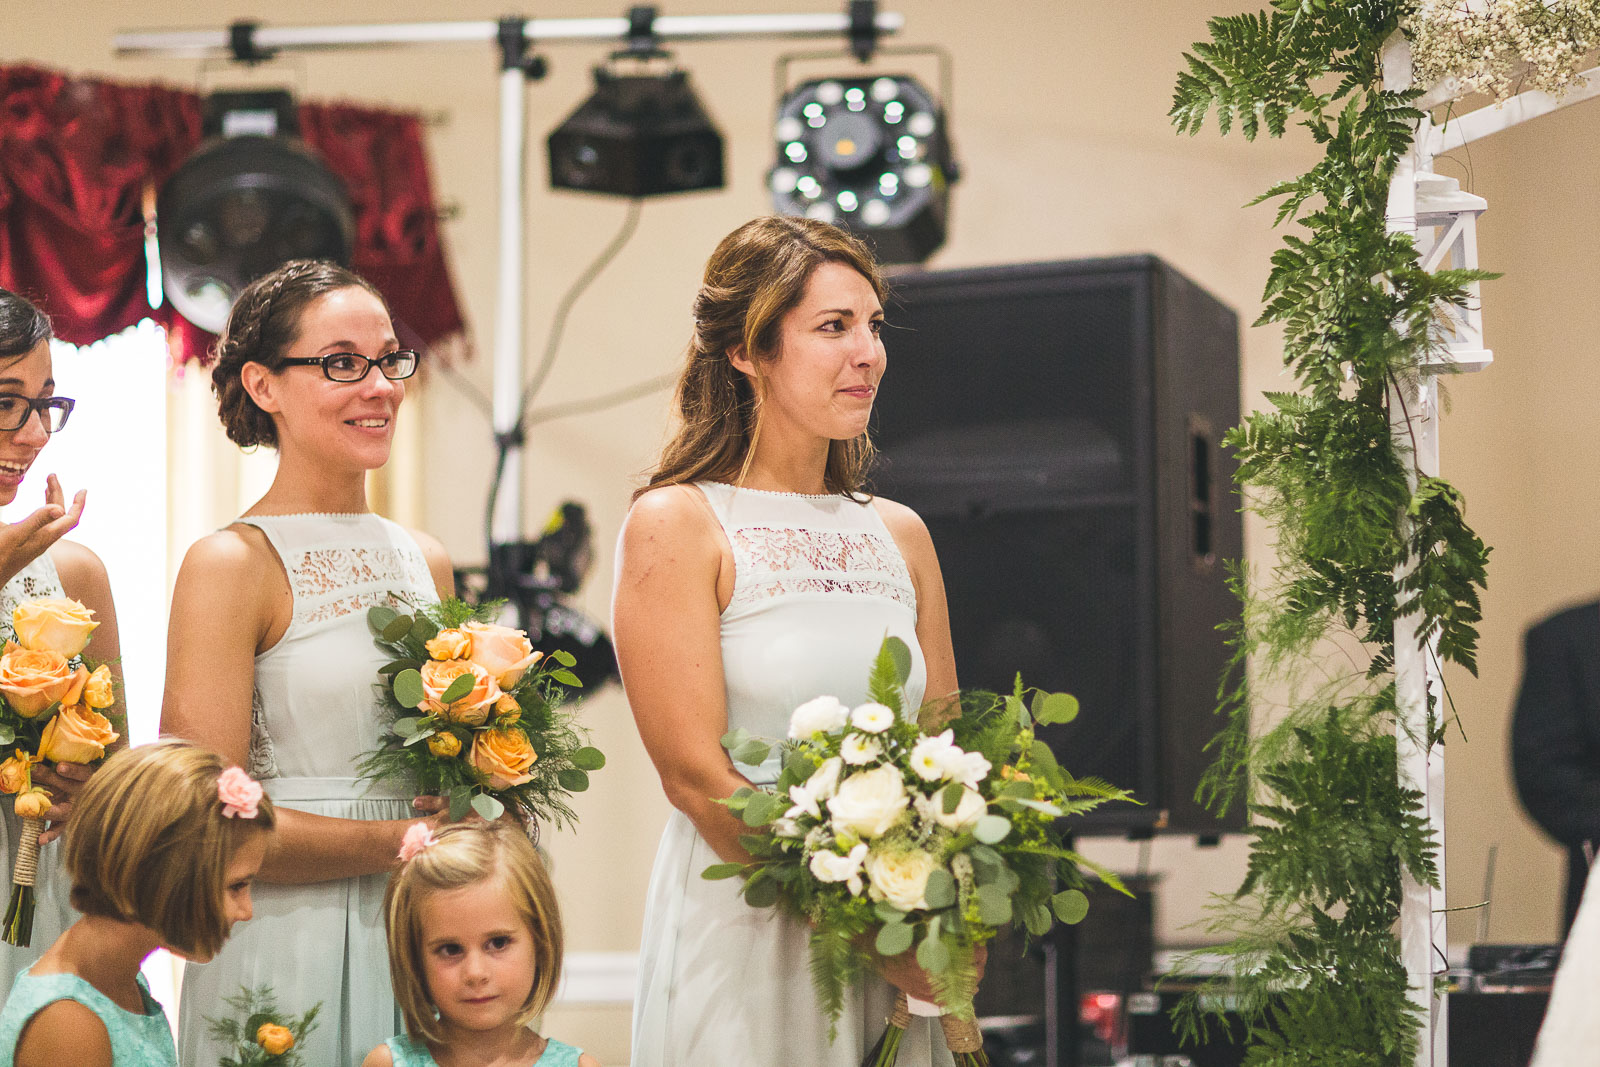 Sister tears up over brides vows